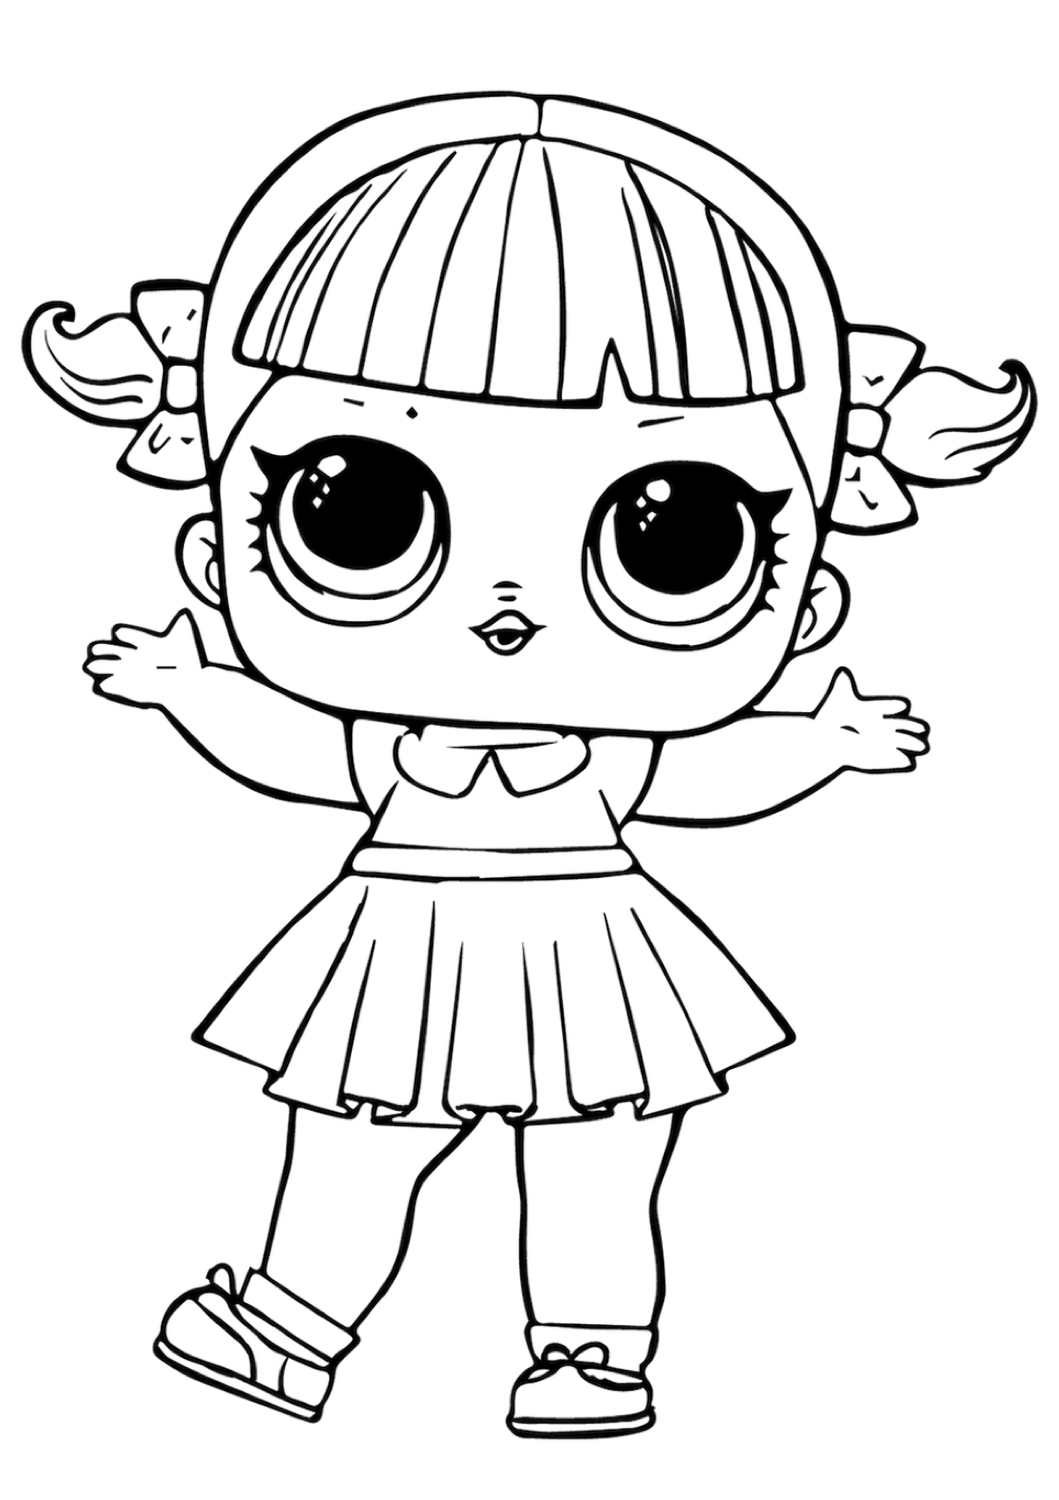 Cheer Captain in 2020 | Lol dolls, Coloring pages, Doll ...